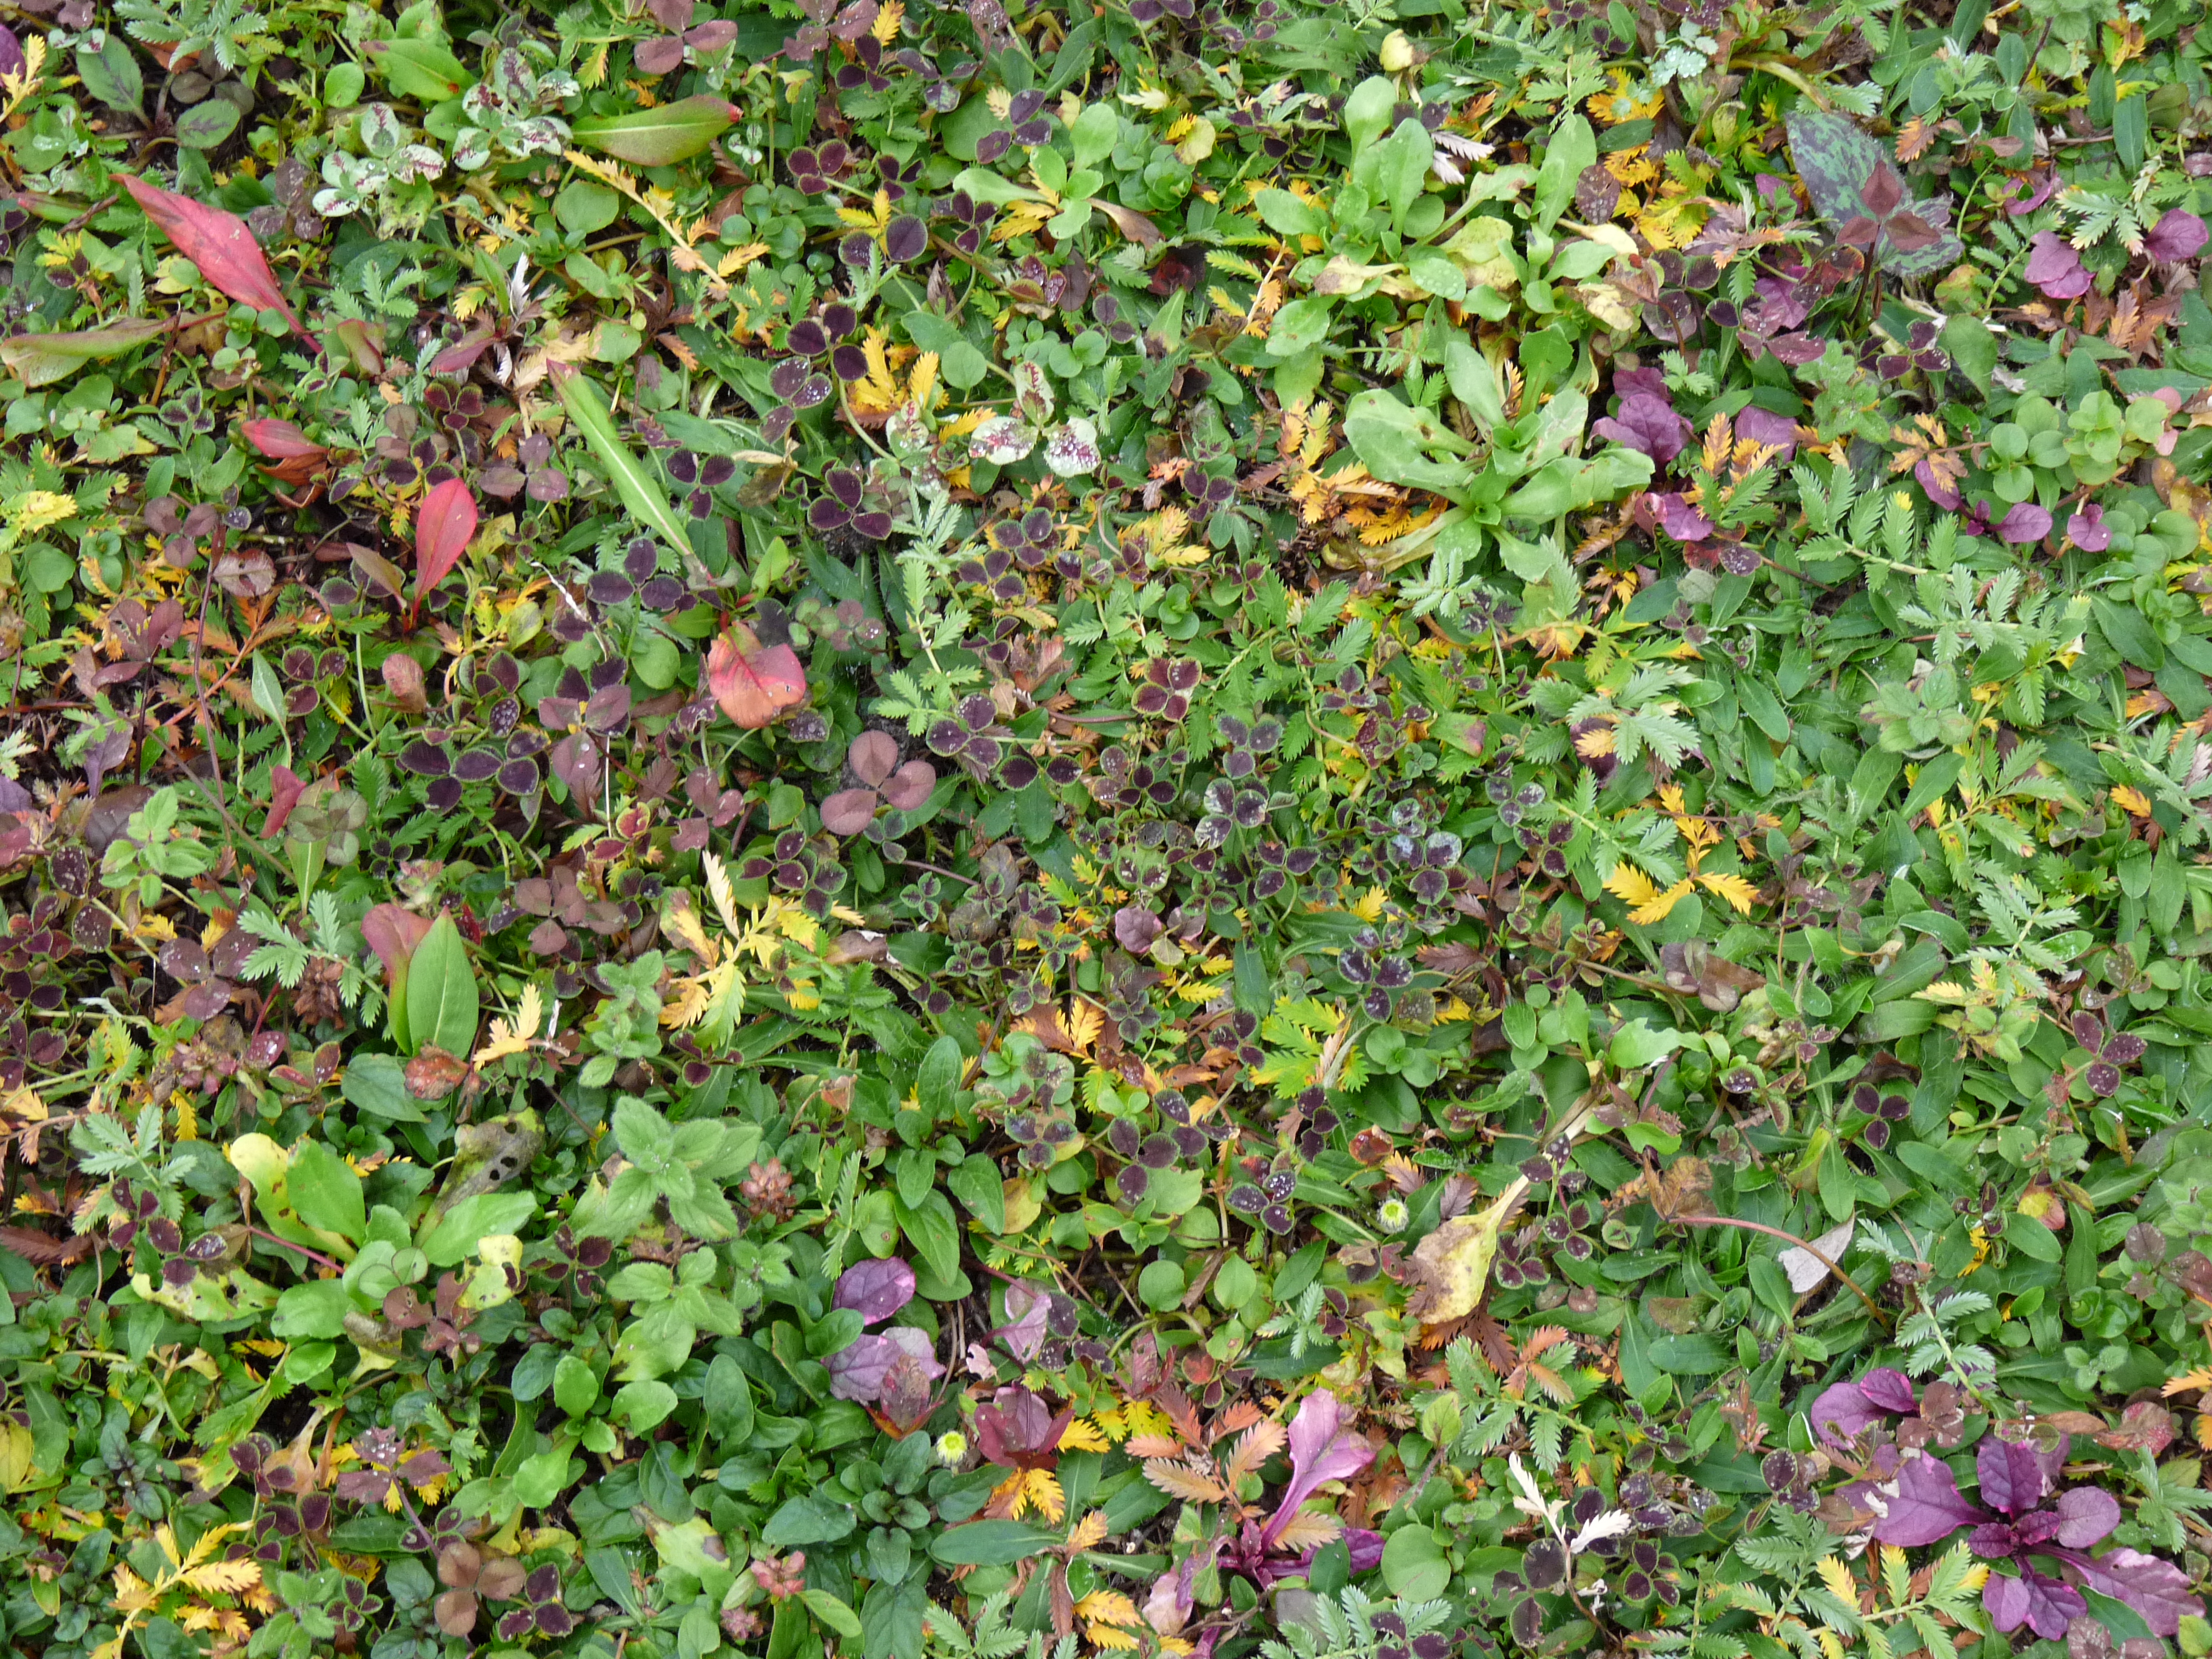 tapestry lawn mixed autumnal foliage.jpg